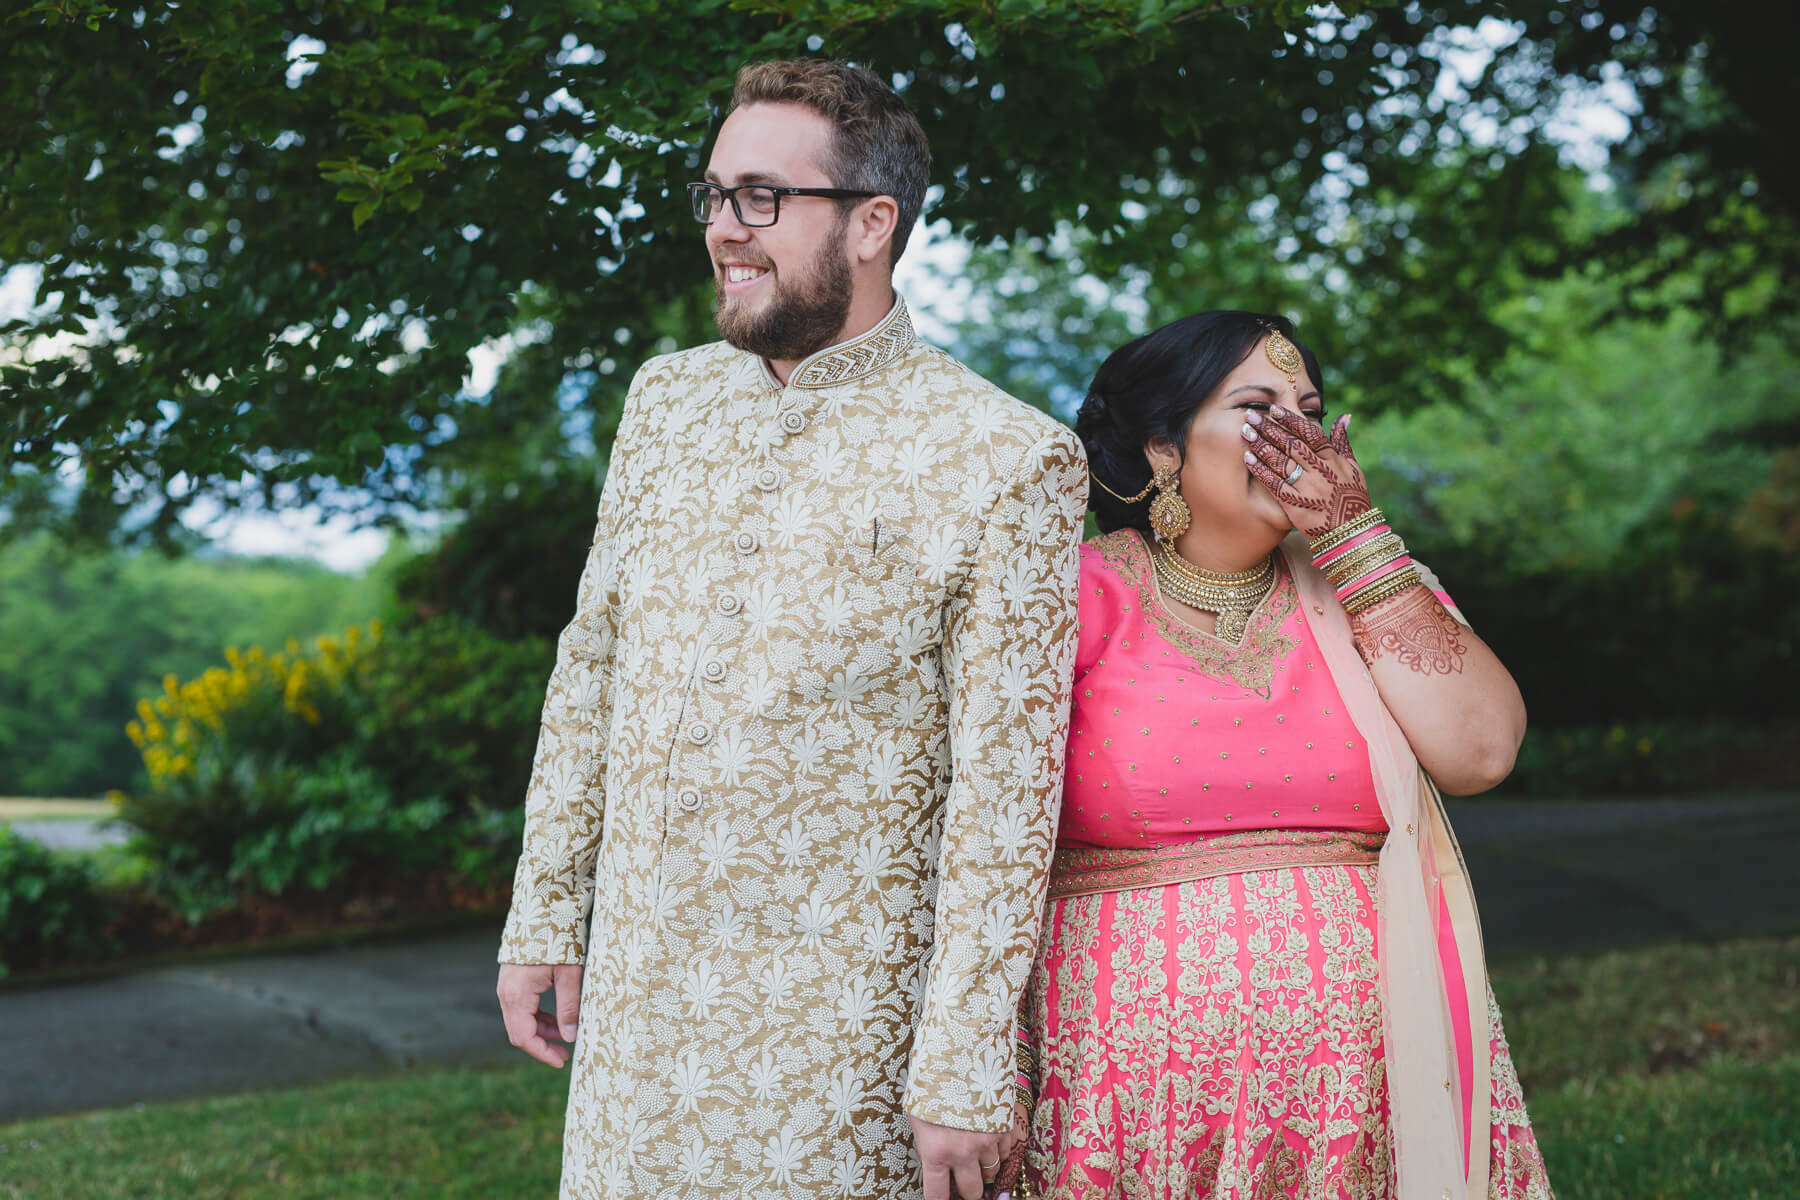 alternative wedding photographer vancouver, quirky bride and groom portrait